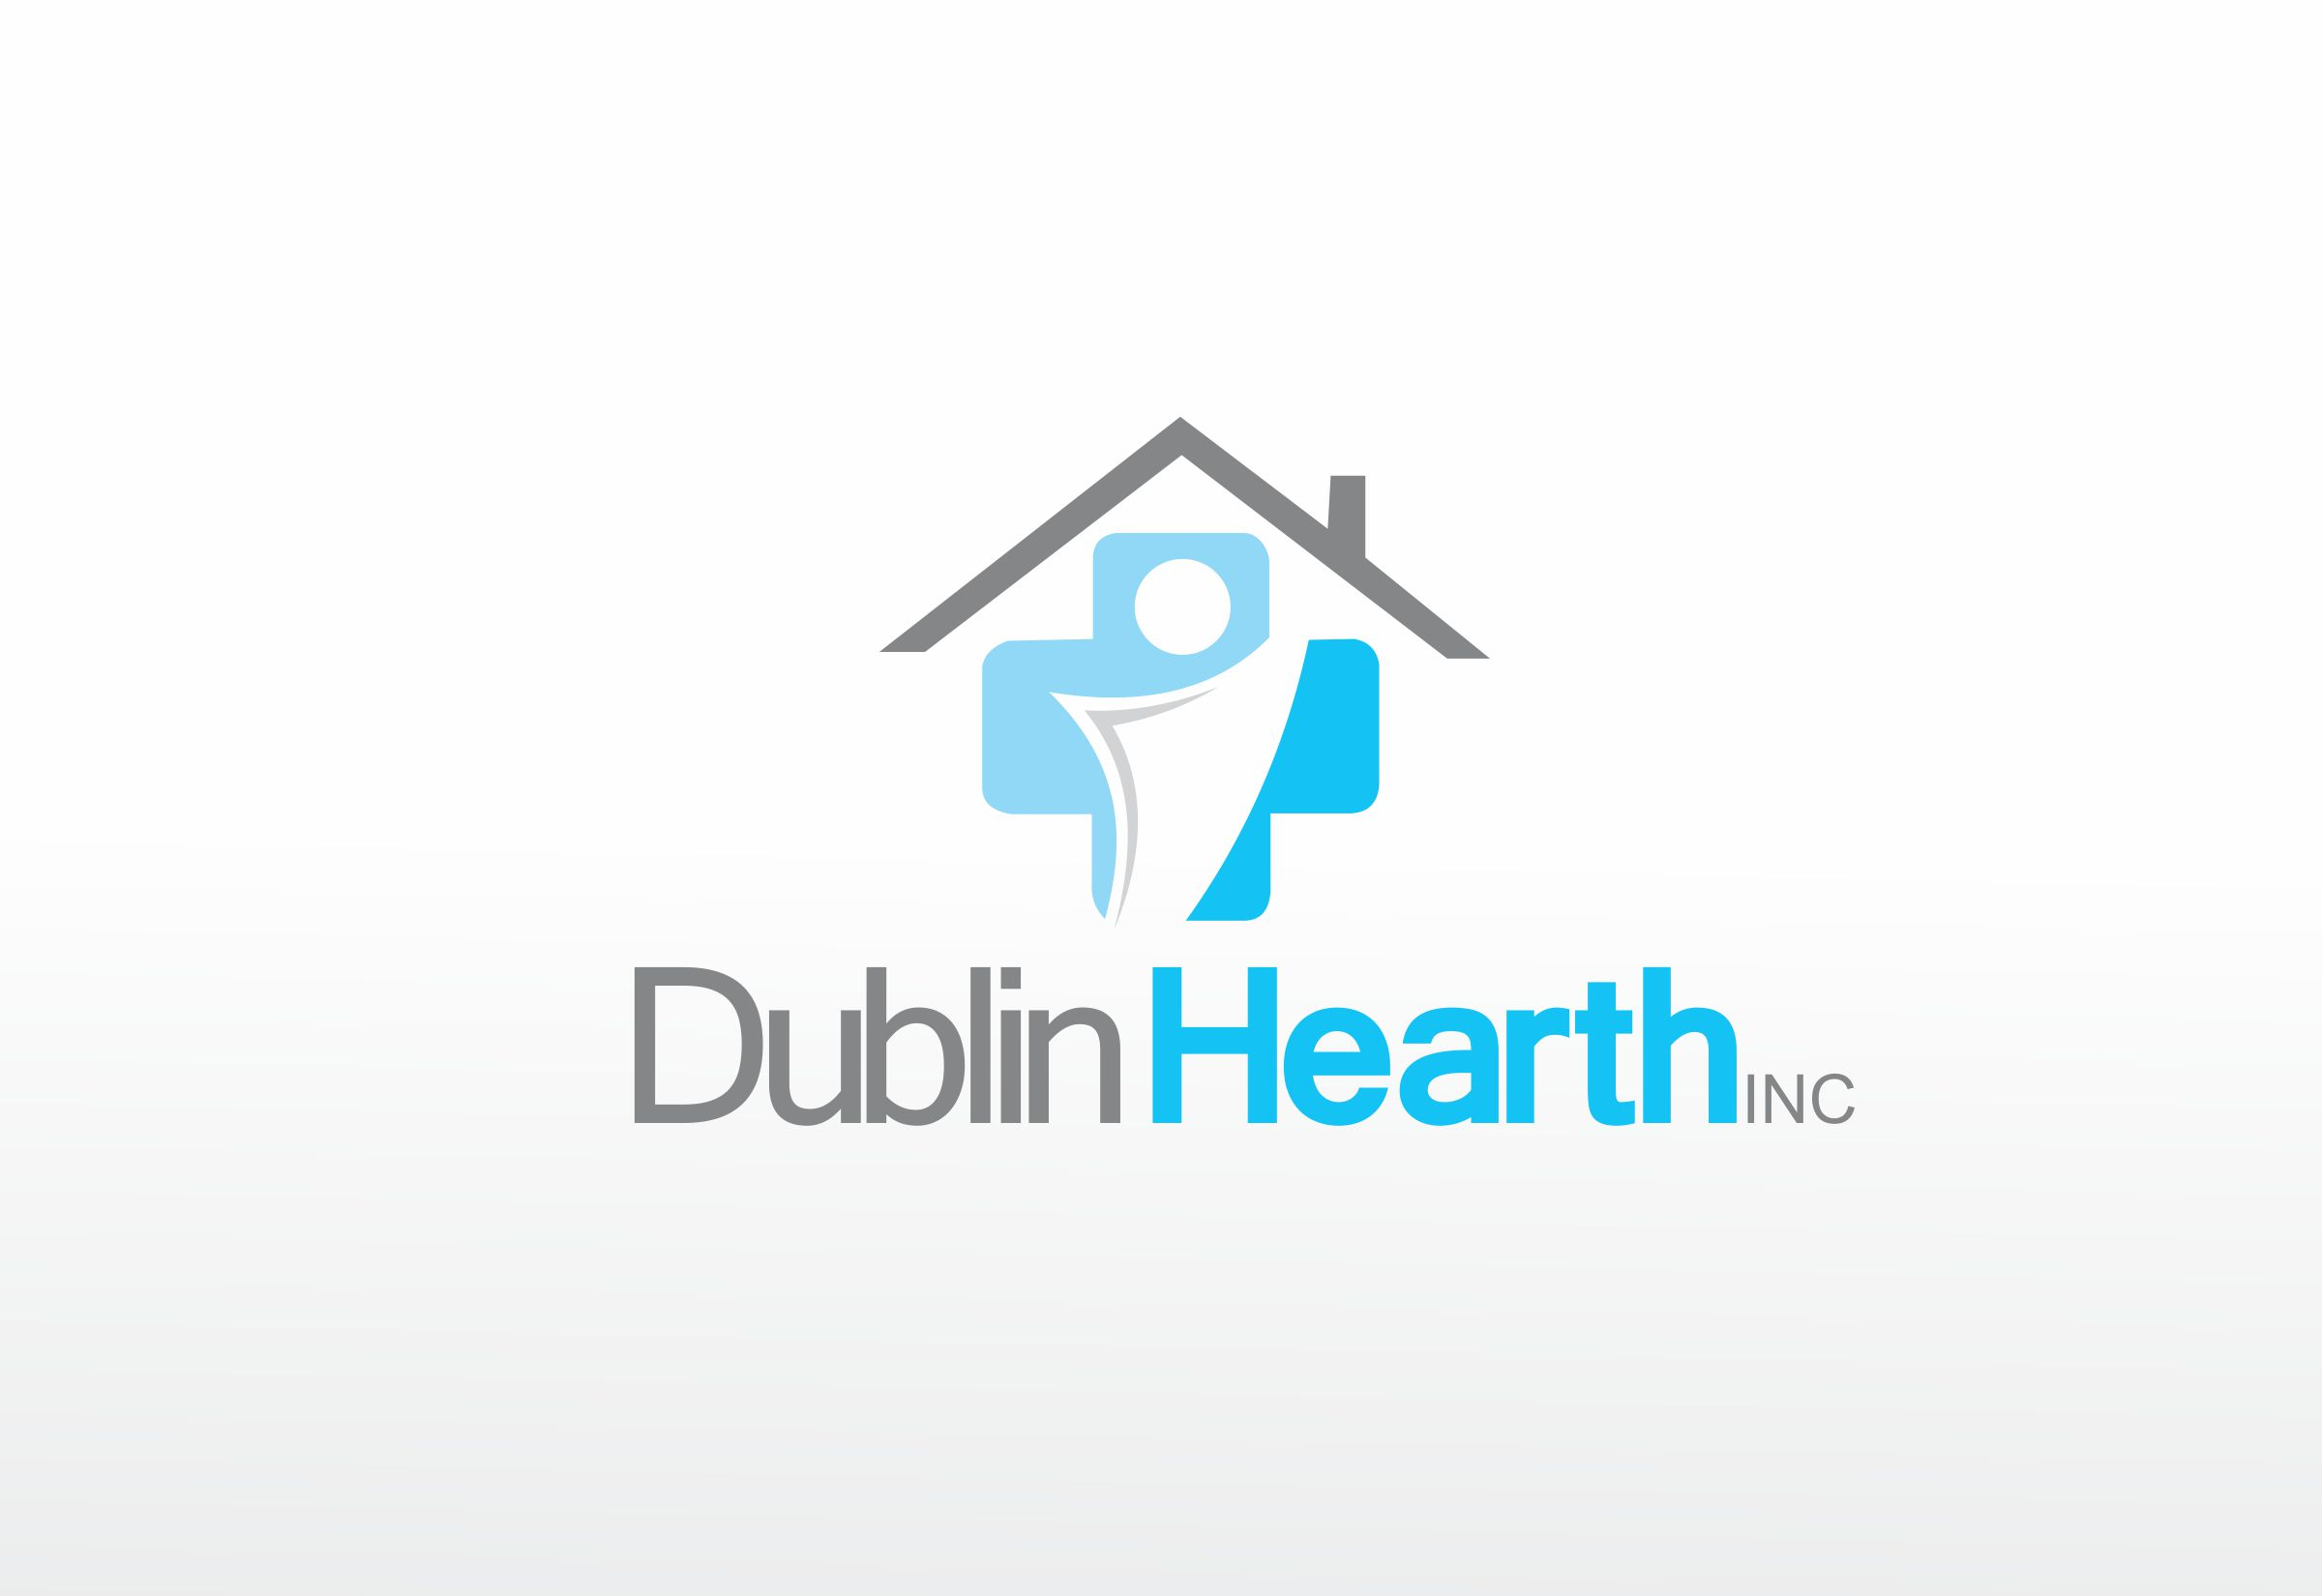 Logo Design by Web Sourcing - Entry No. 38 in the Logo Design Contest clean professional  Logo Design for Dublin Hearth Inc. with a splash of fun with letter head.